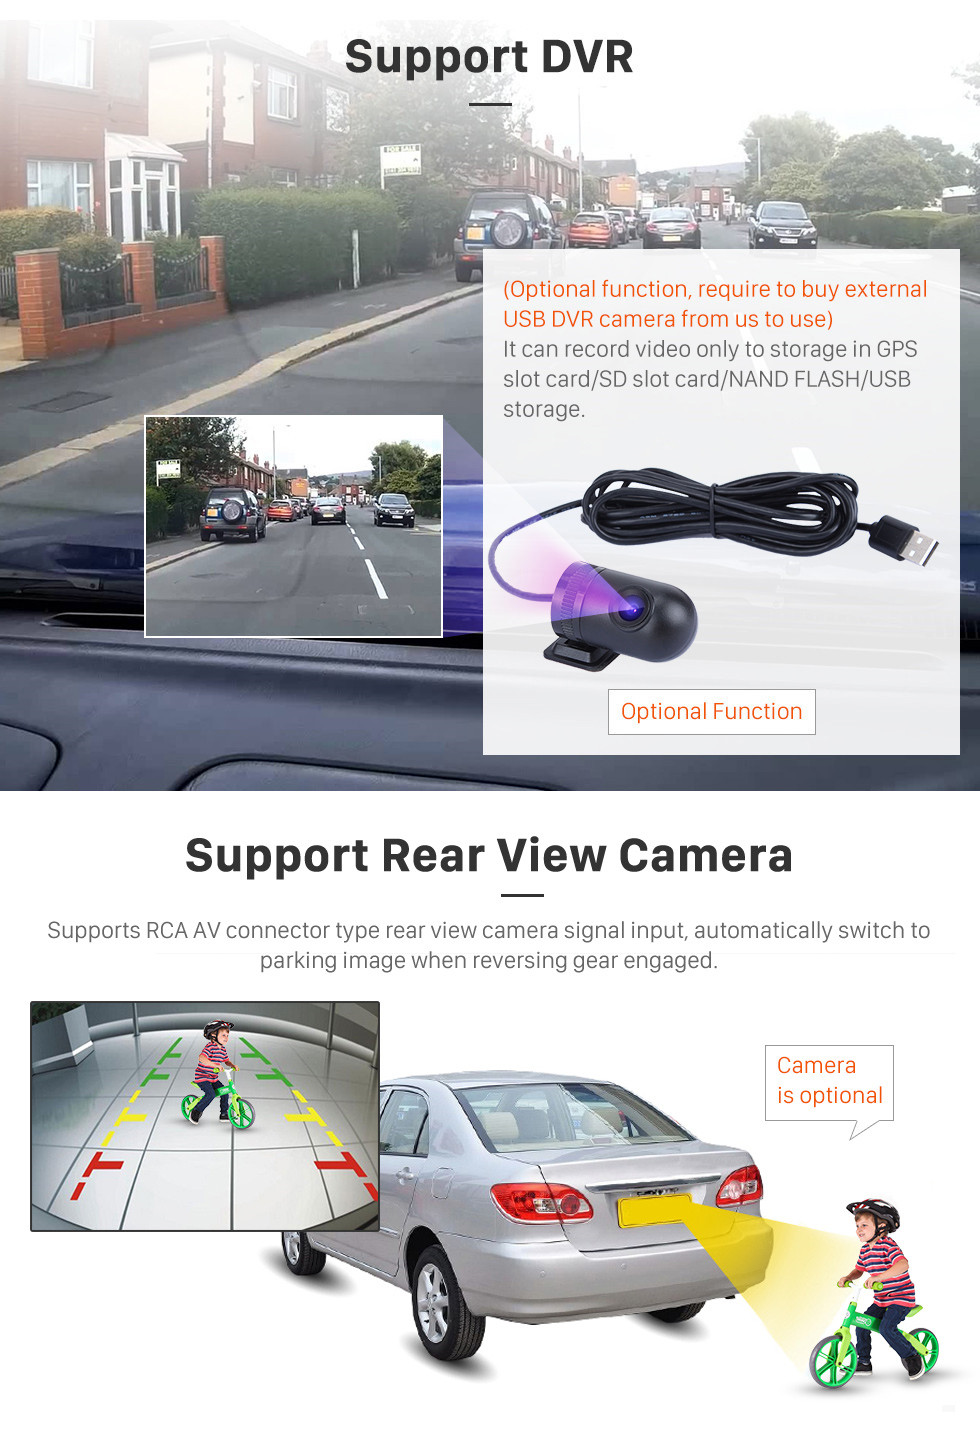 Seicane 10.1 inch Quad-core Android 10.0 Autoradio GPS navigation system for 2013 2014 2015 Toyota LEVIN Bluetooth HD touch screen stereo support OBD DVR  Rear view camera Mirror link  DVD player TV USB SD 3G WIFI